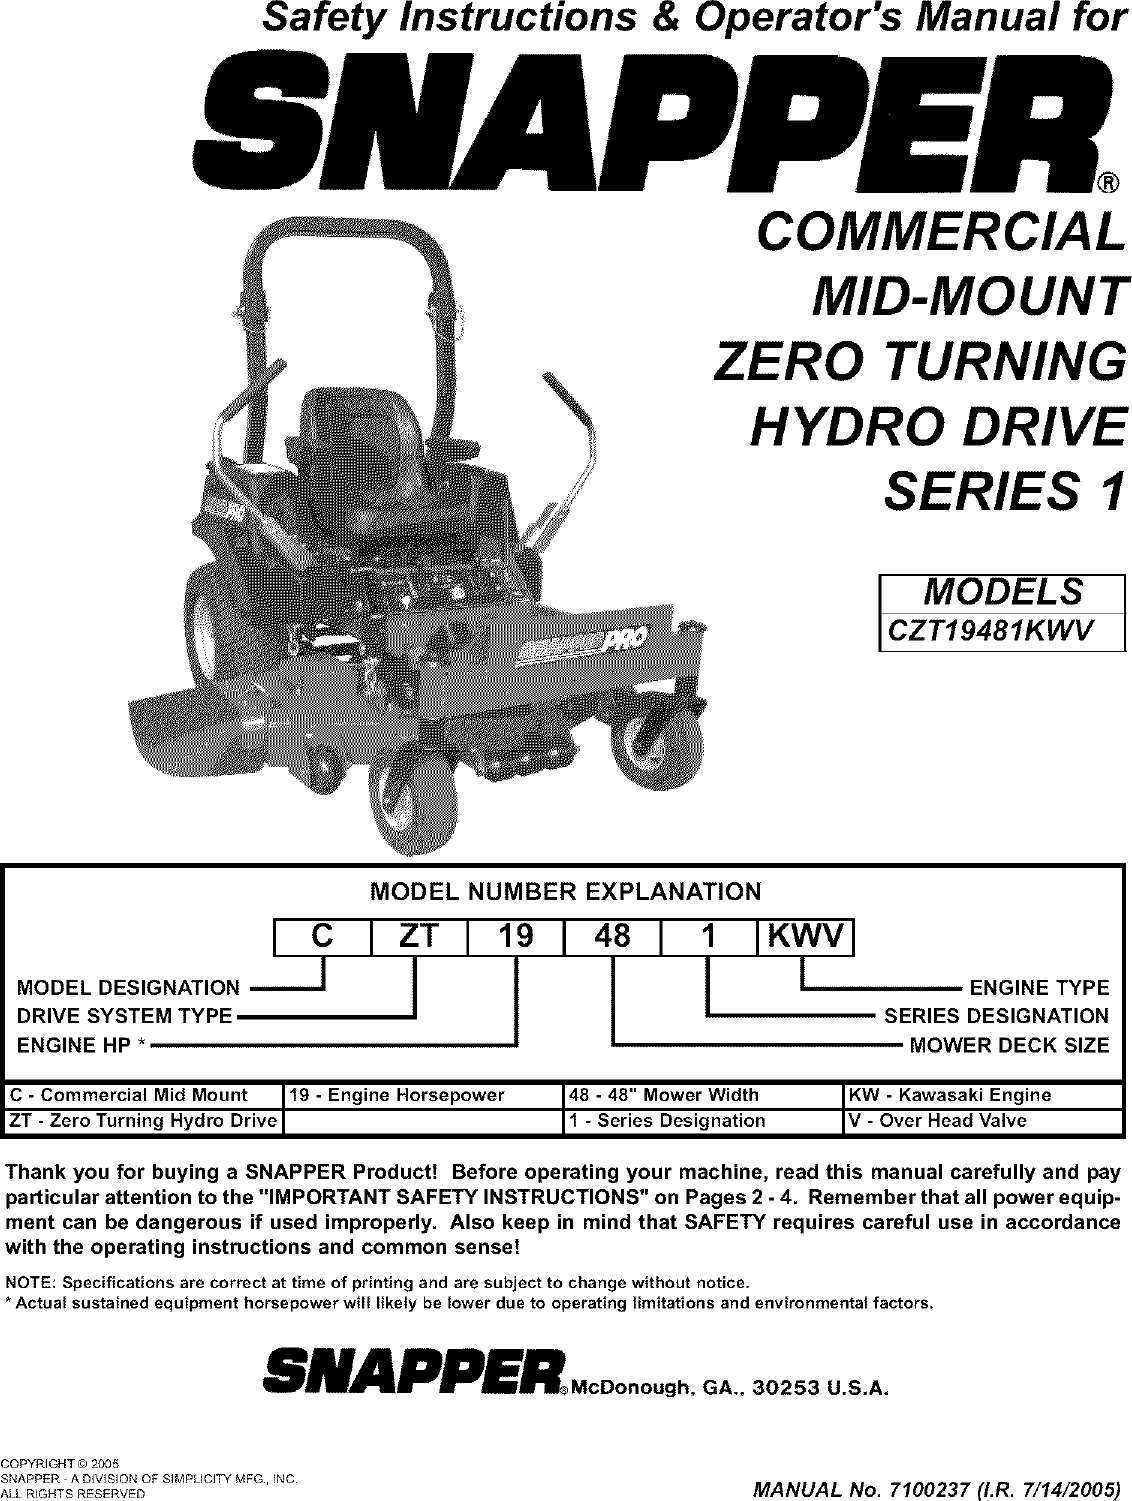 Download User U0026 Service Manuals For Your Zero Turn Mower Manual Guide